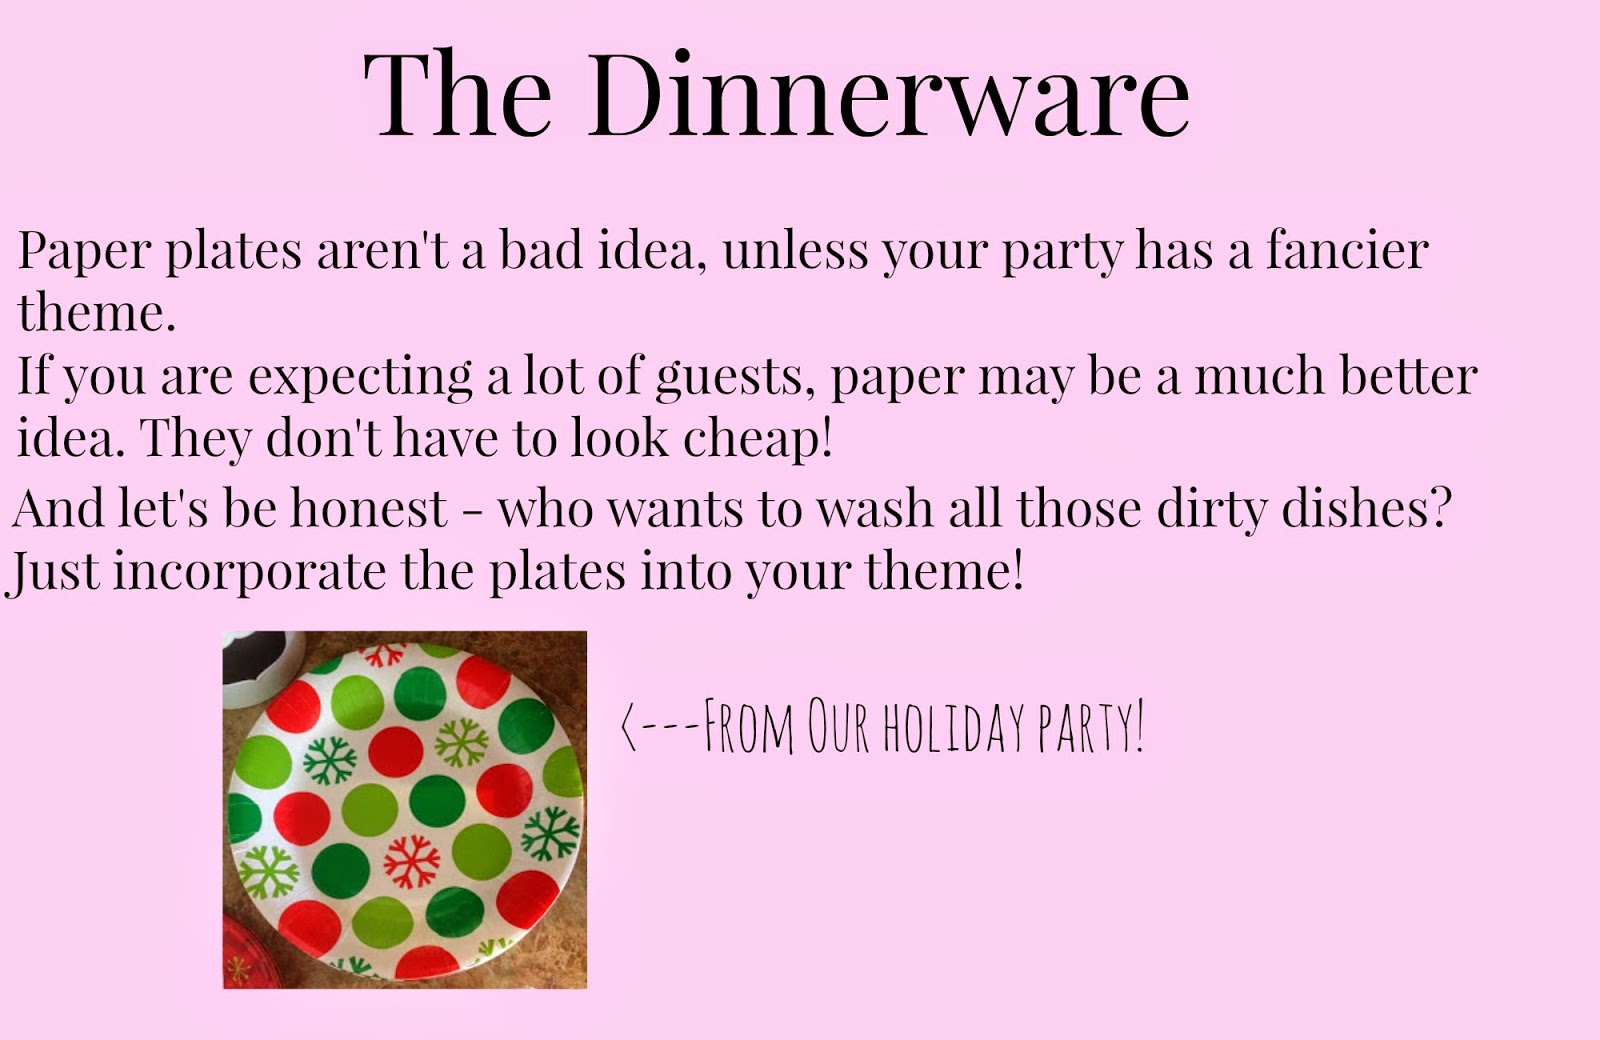 6 Tips to Throwing a Successful Party - Dinnerware